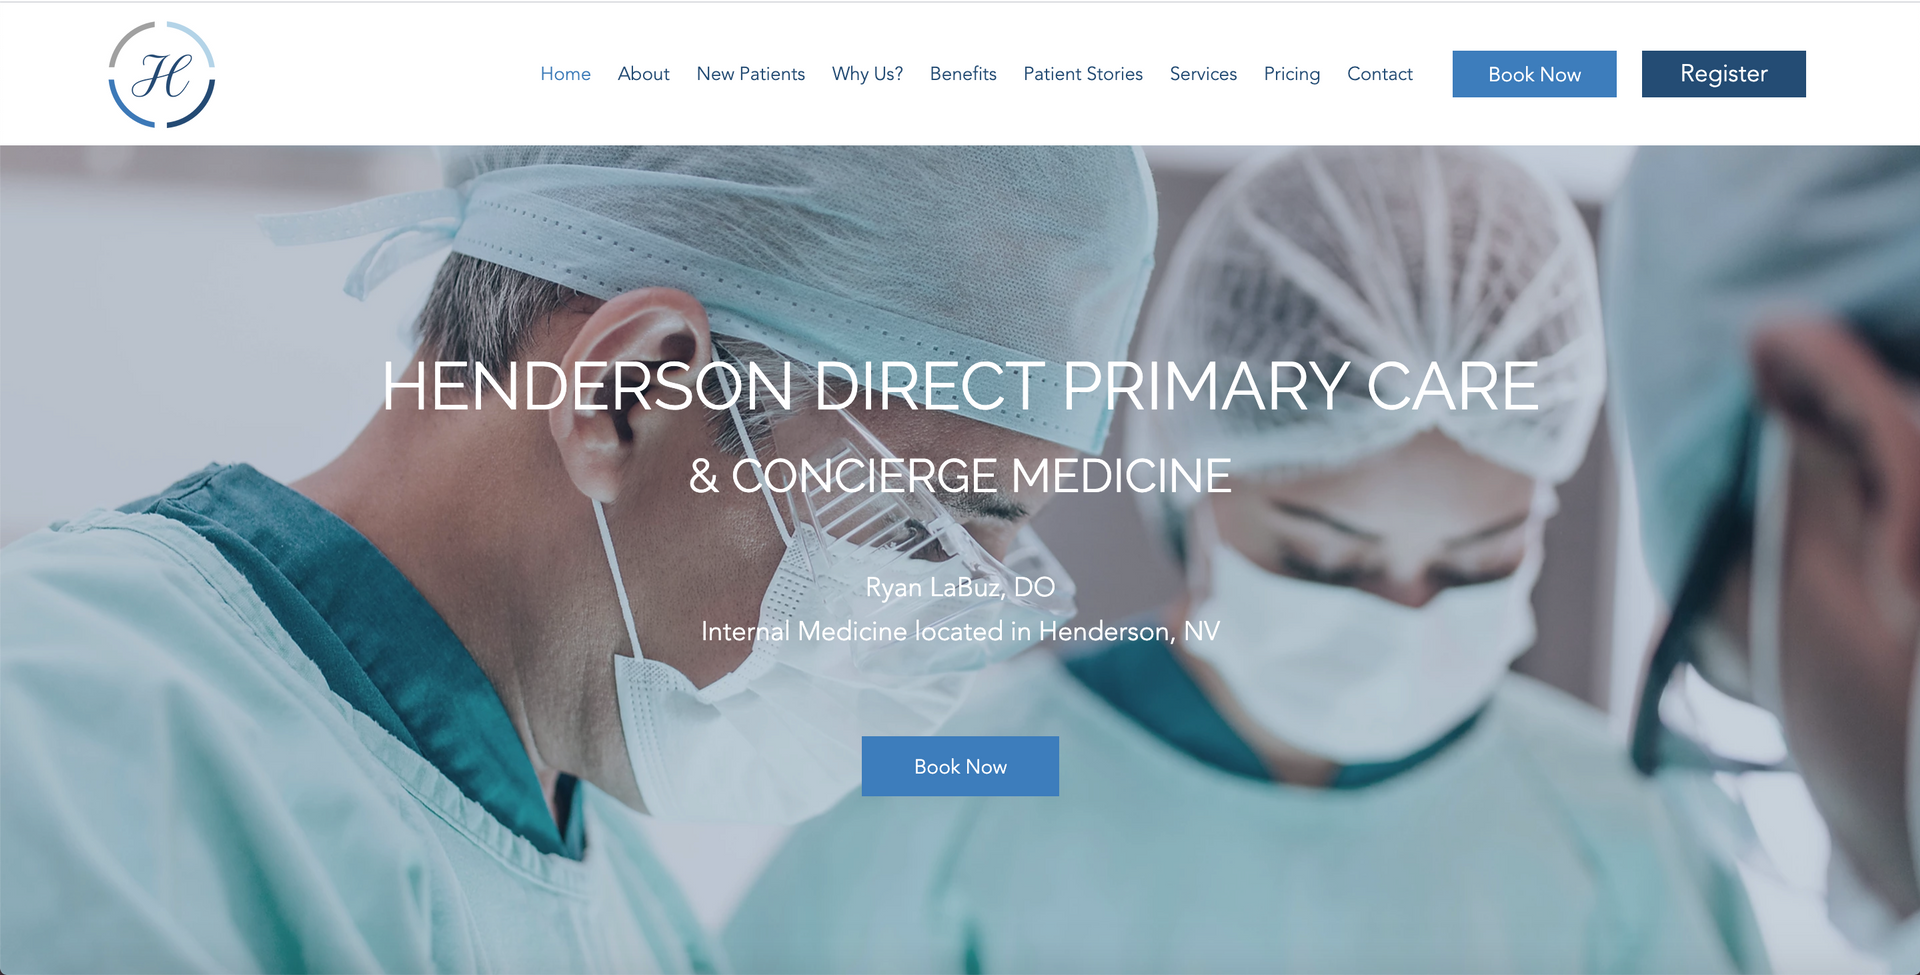 HENDERSON DIRECT PRIMARY CARE